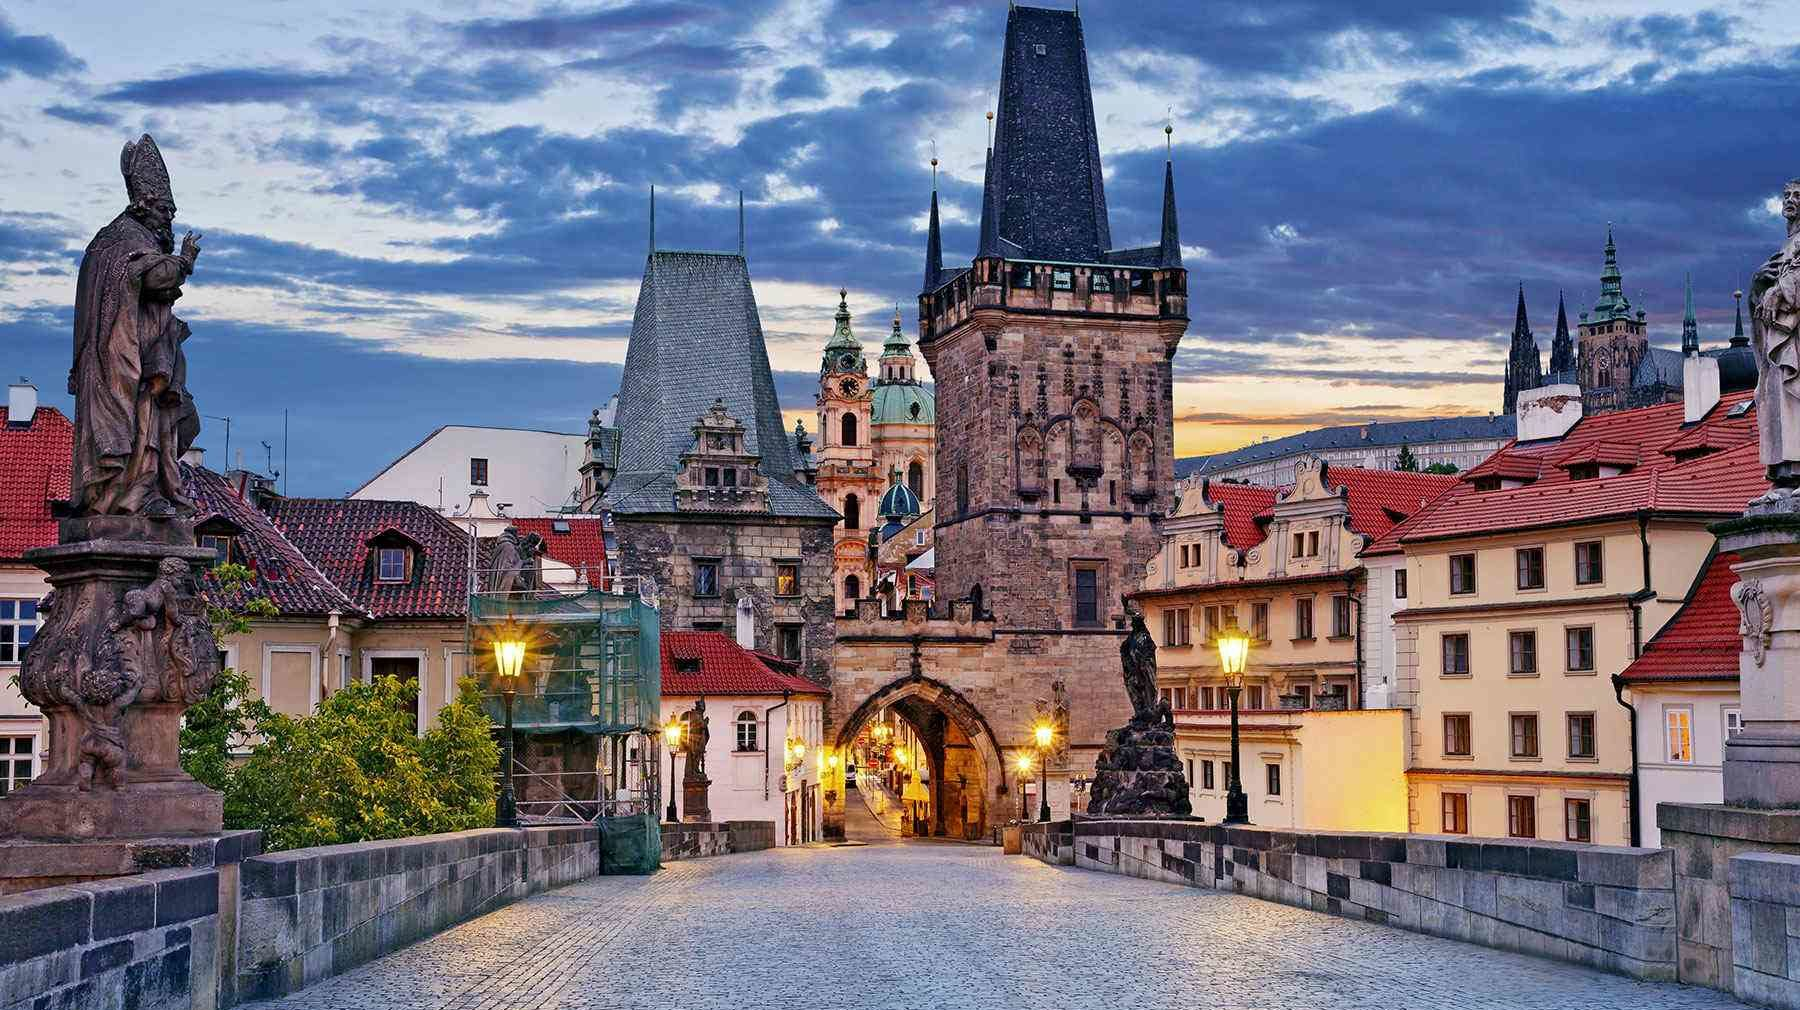 cropped-Cities-Prague.jpg